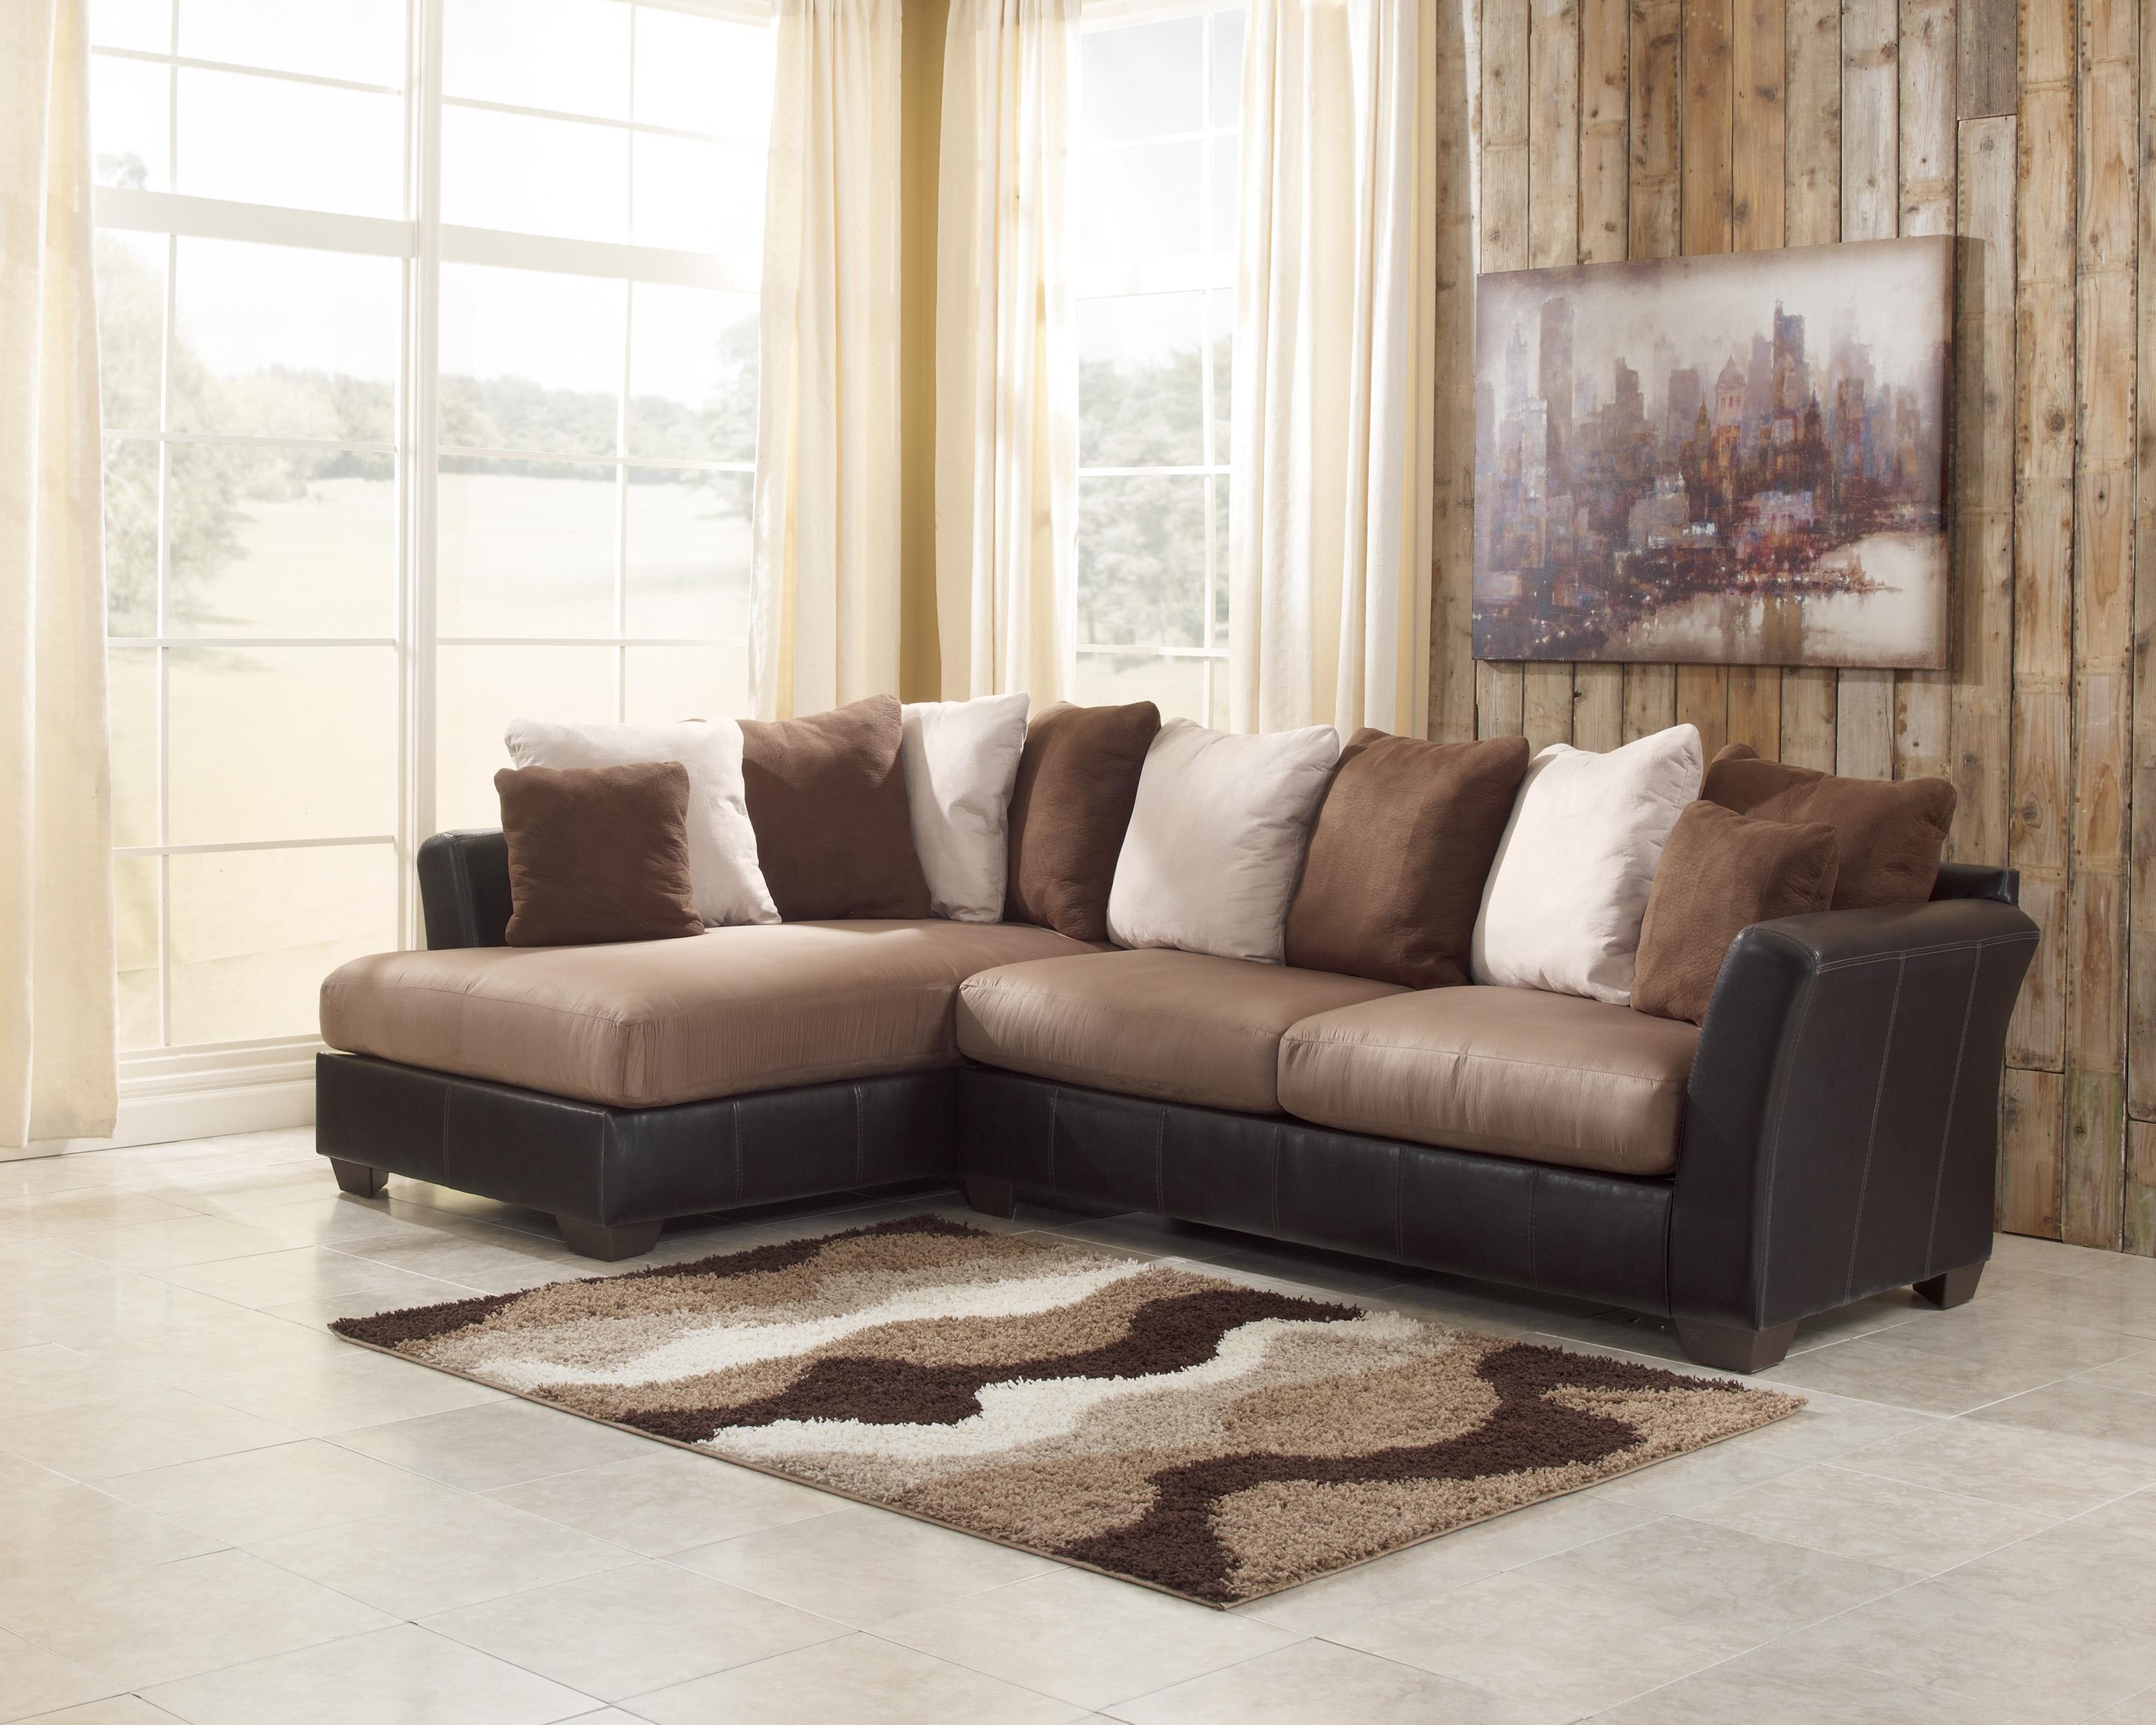 Furniture: Oversized Sectional Sofa | Jessa Place 3 Piece Intended For Small 2 Piece Sectional Sofas (Image 7 of 23)